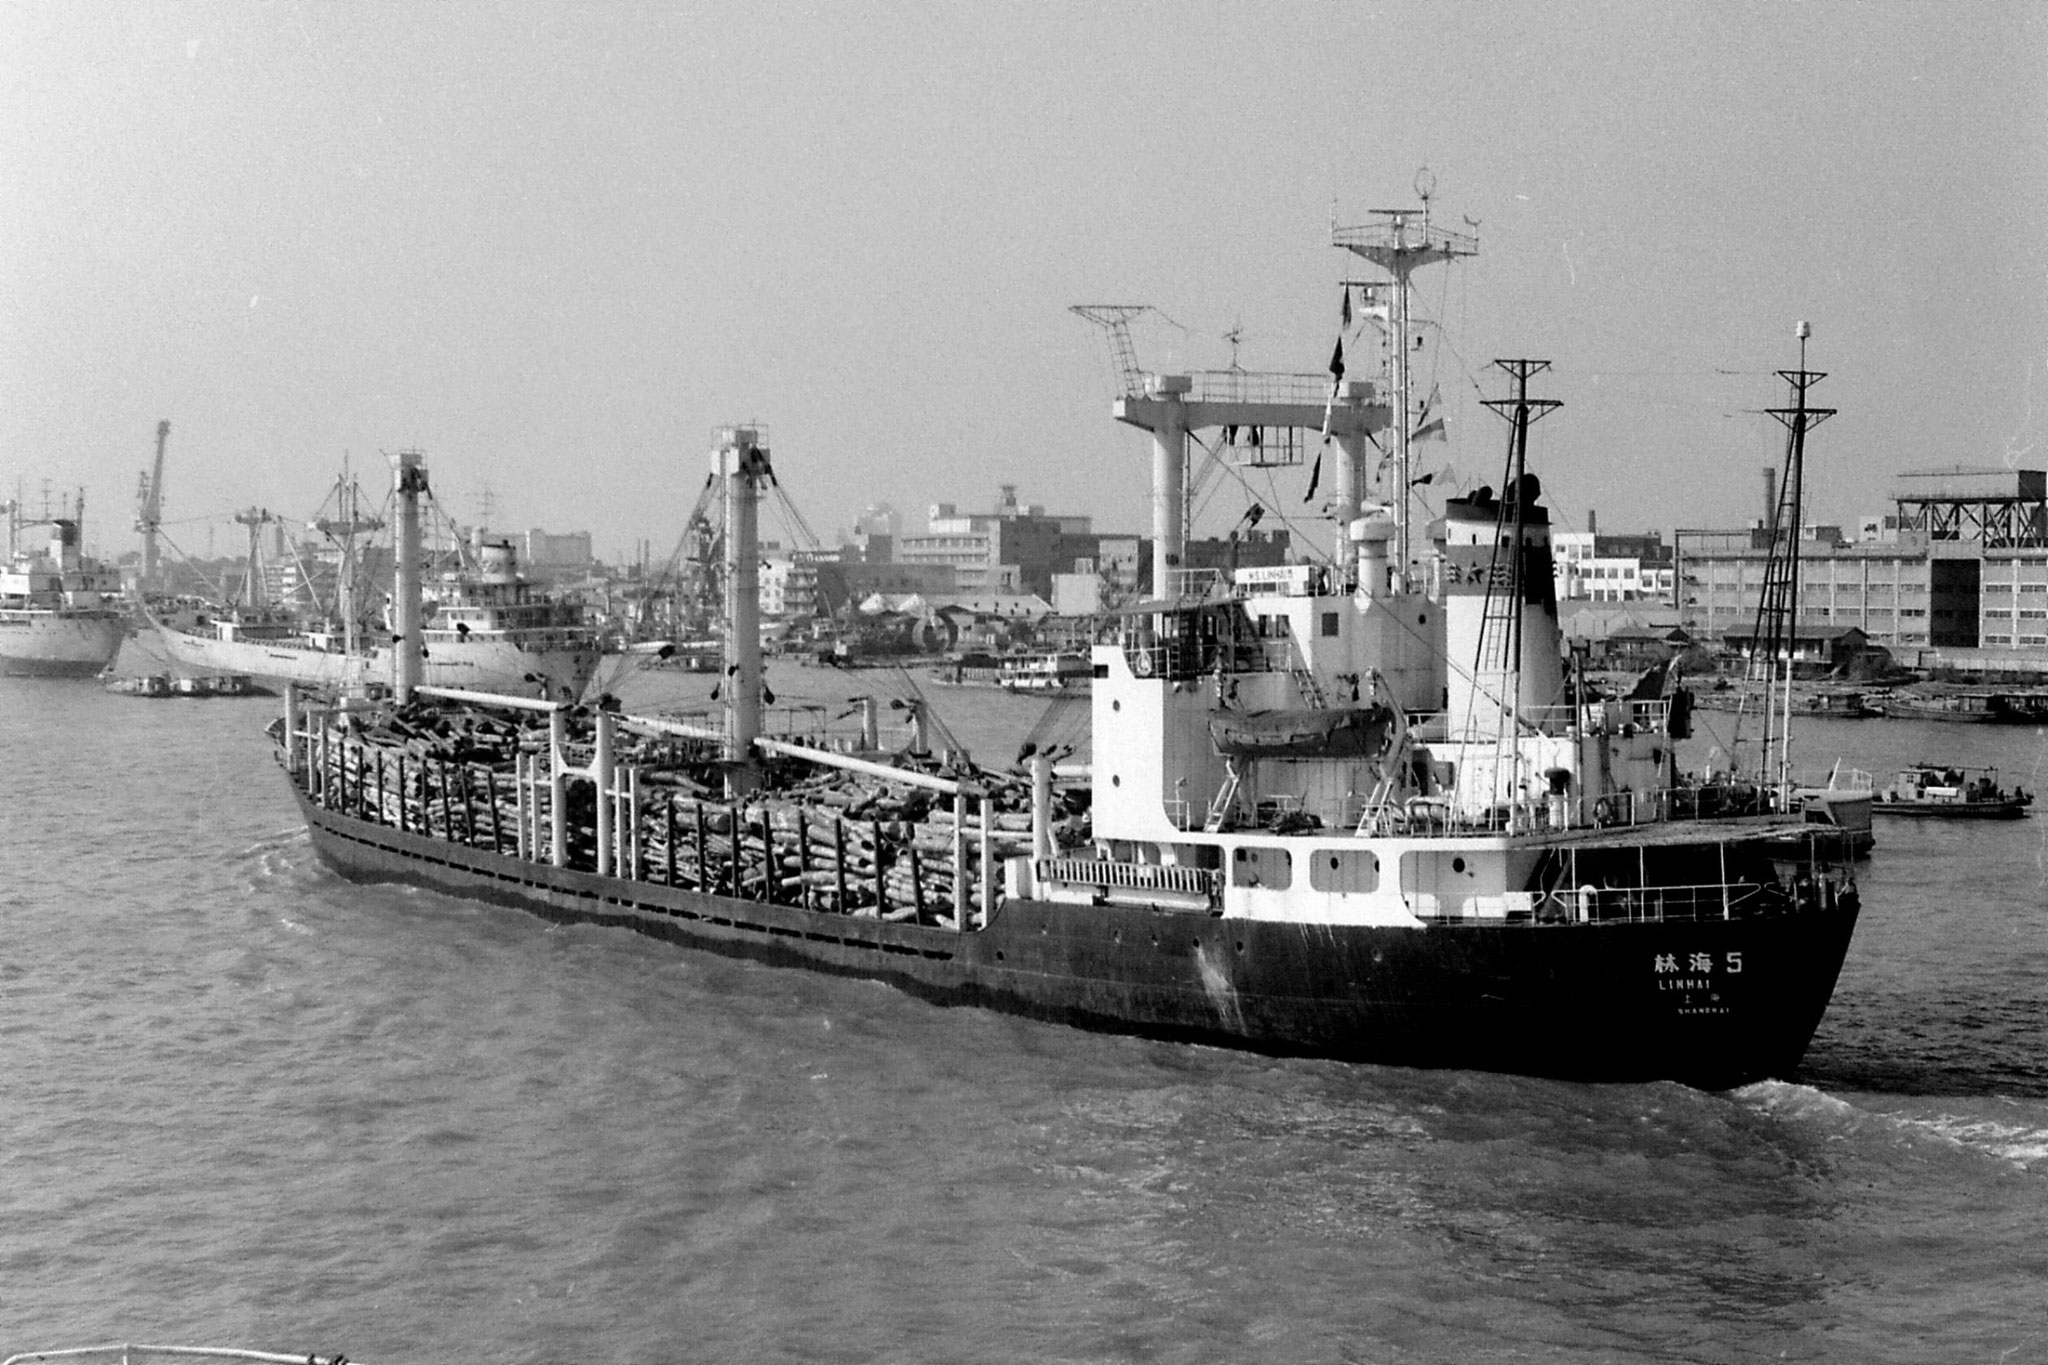 17/12/1988: 4: Shanghai harbour from ship to Kobe